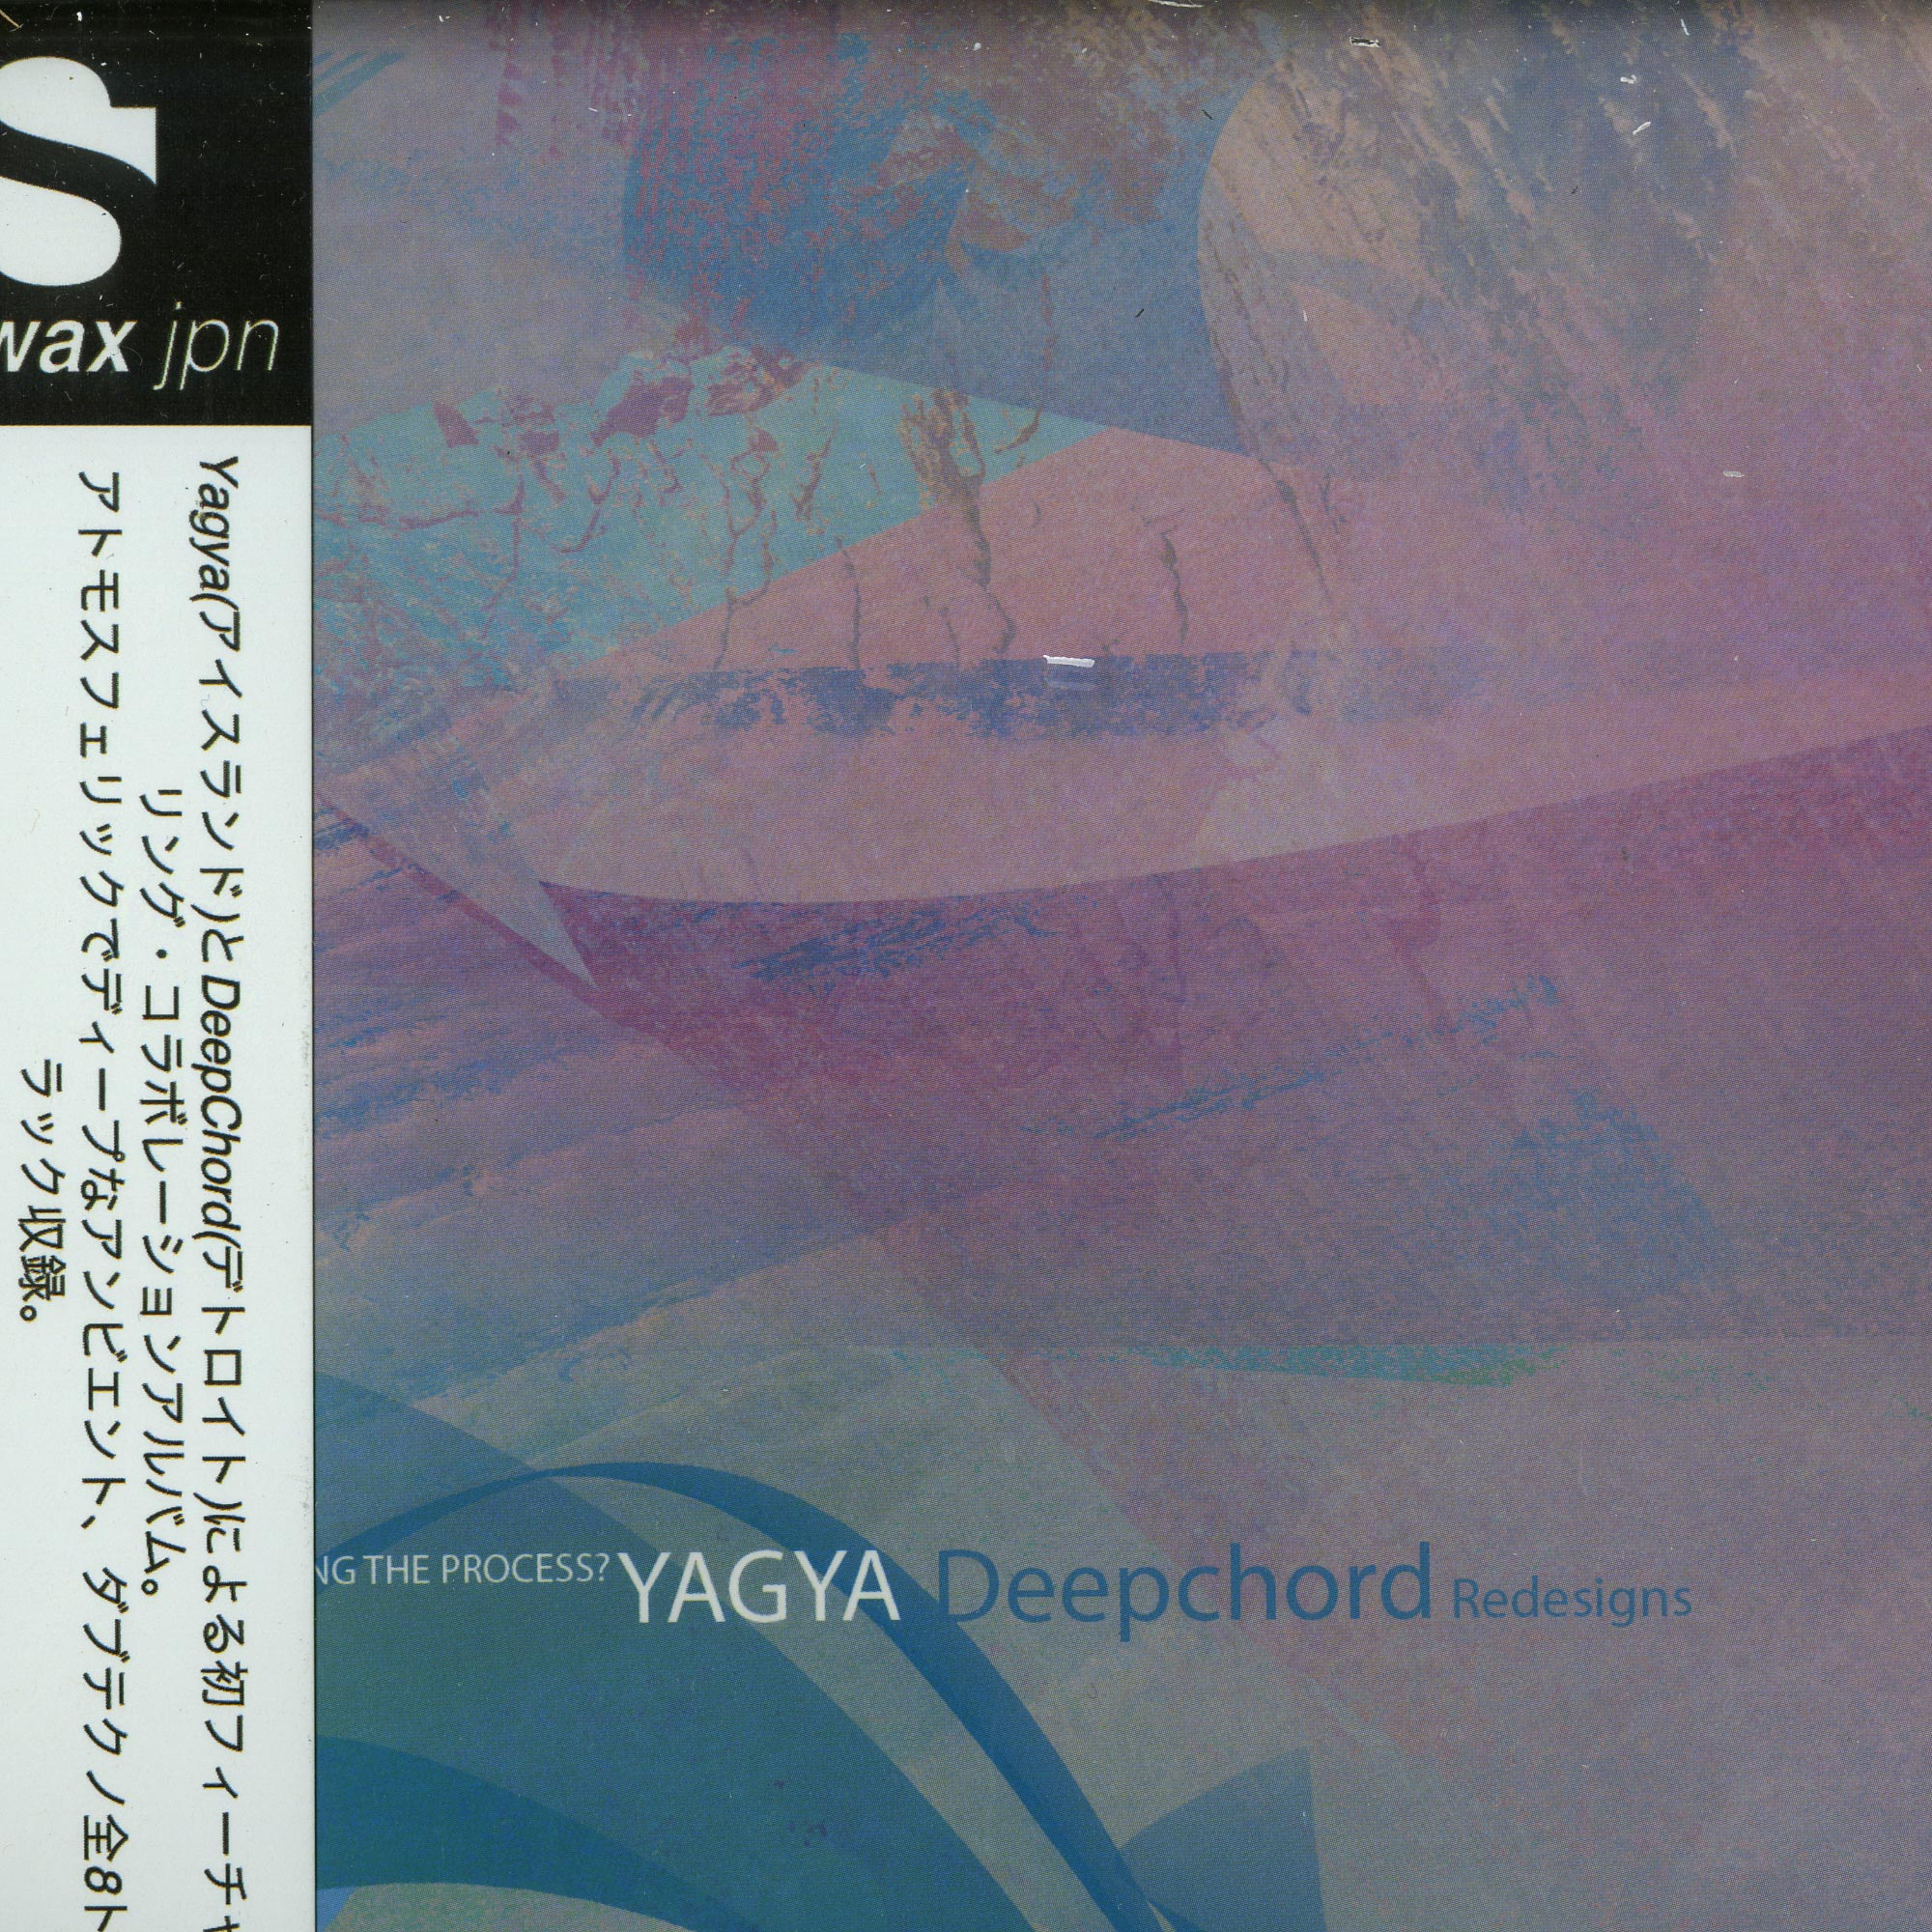 Yagya / DeepChord - WILL I DREAM DURING THE PROCESS / DEEPCHORD REDESIGNS